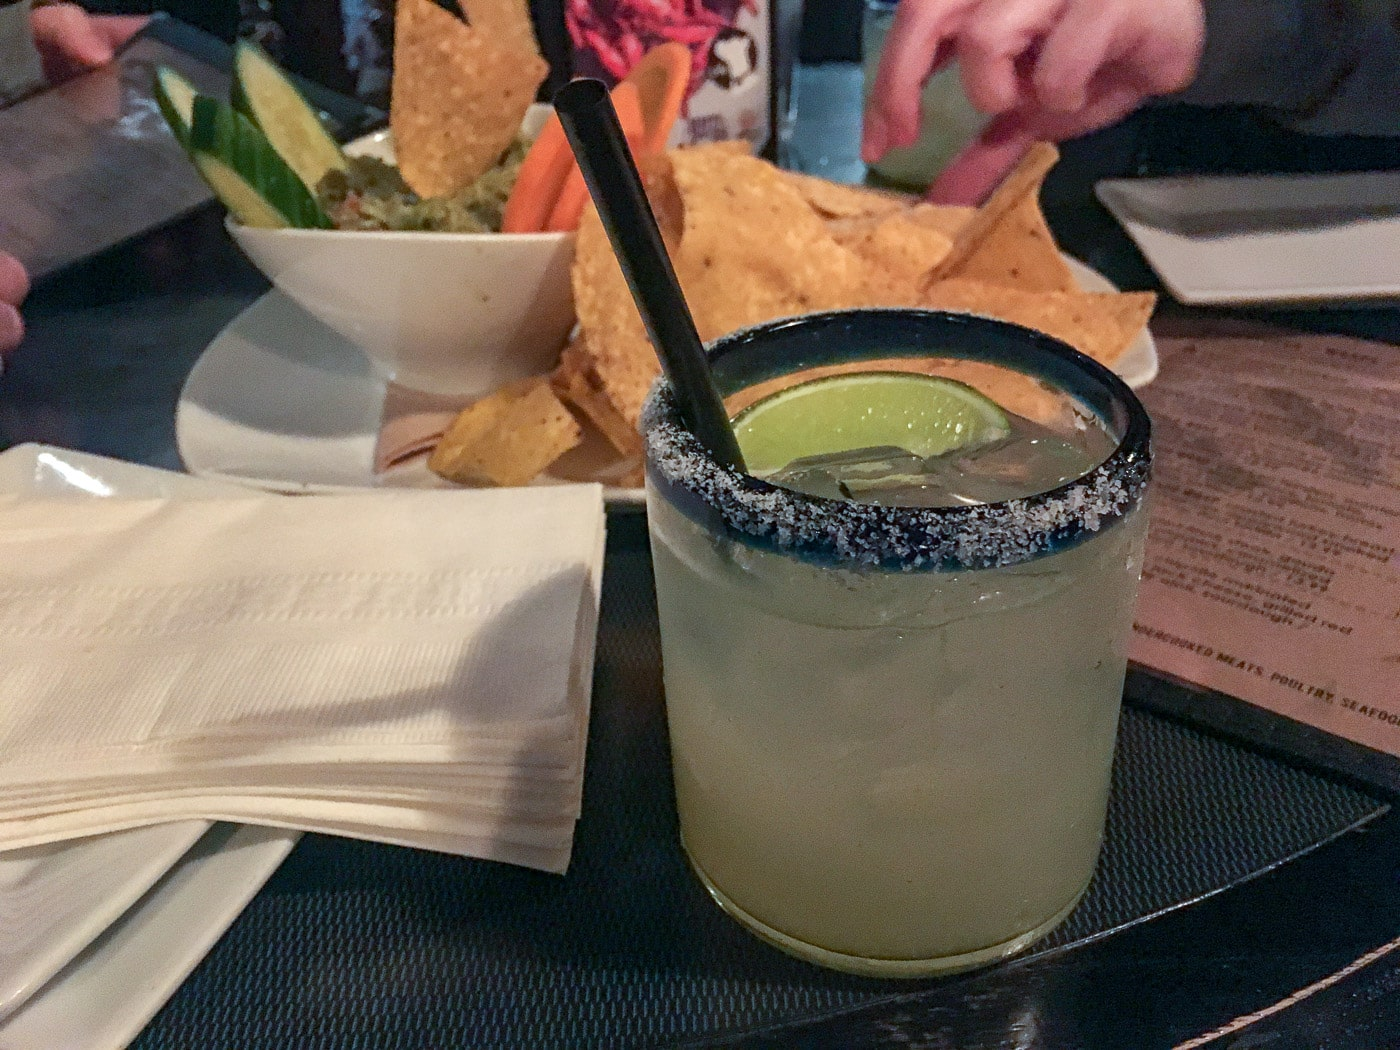 National margarita day.